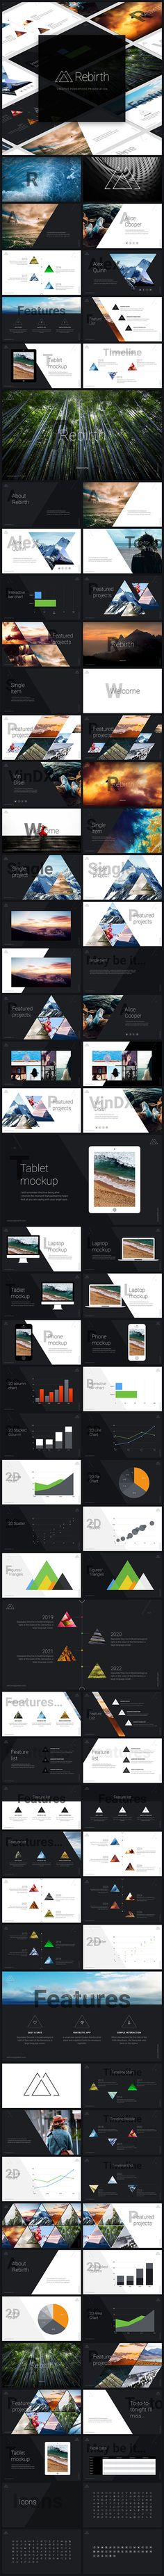 Rebirth PowerPoint Presentation - Creative PowerPoint Templates